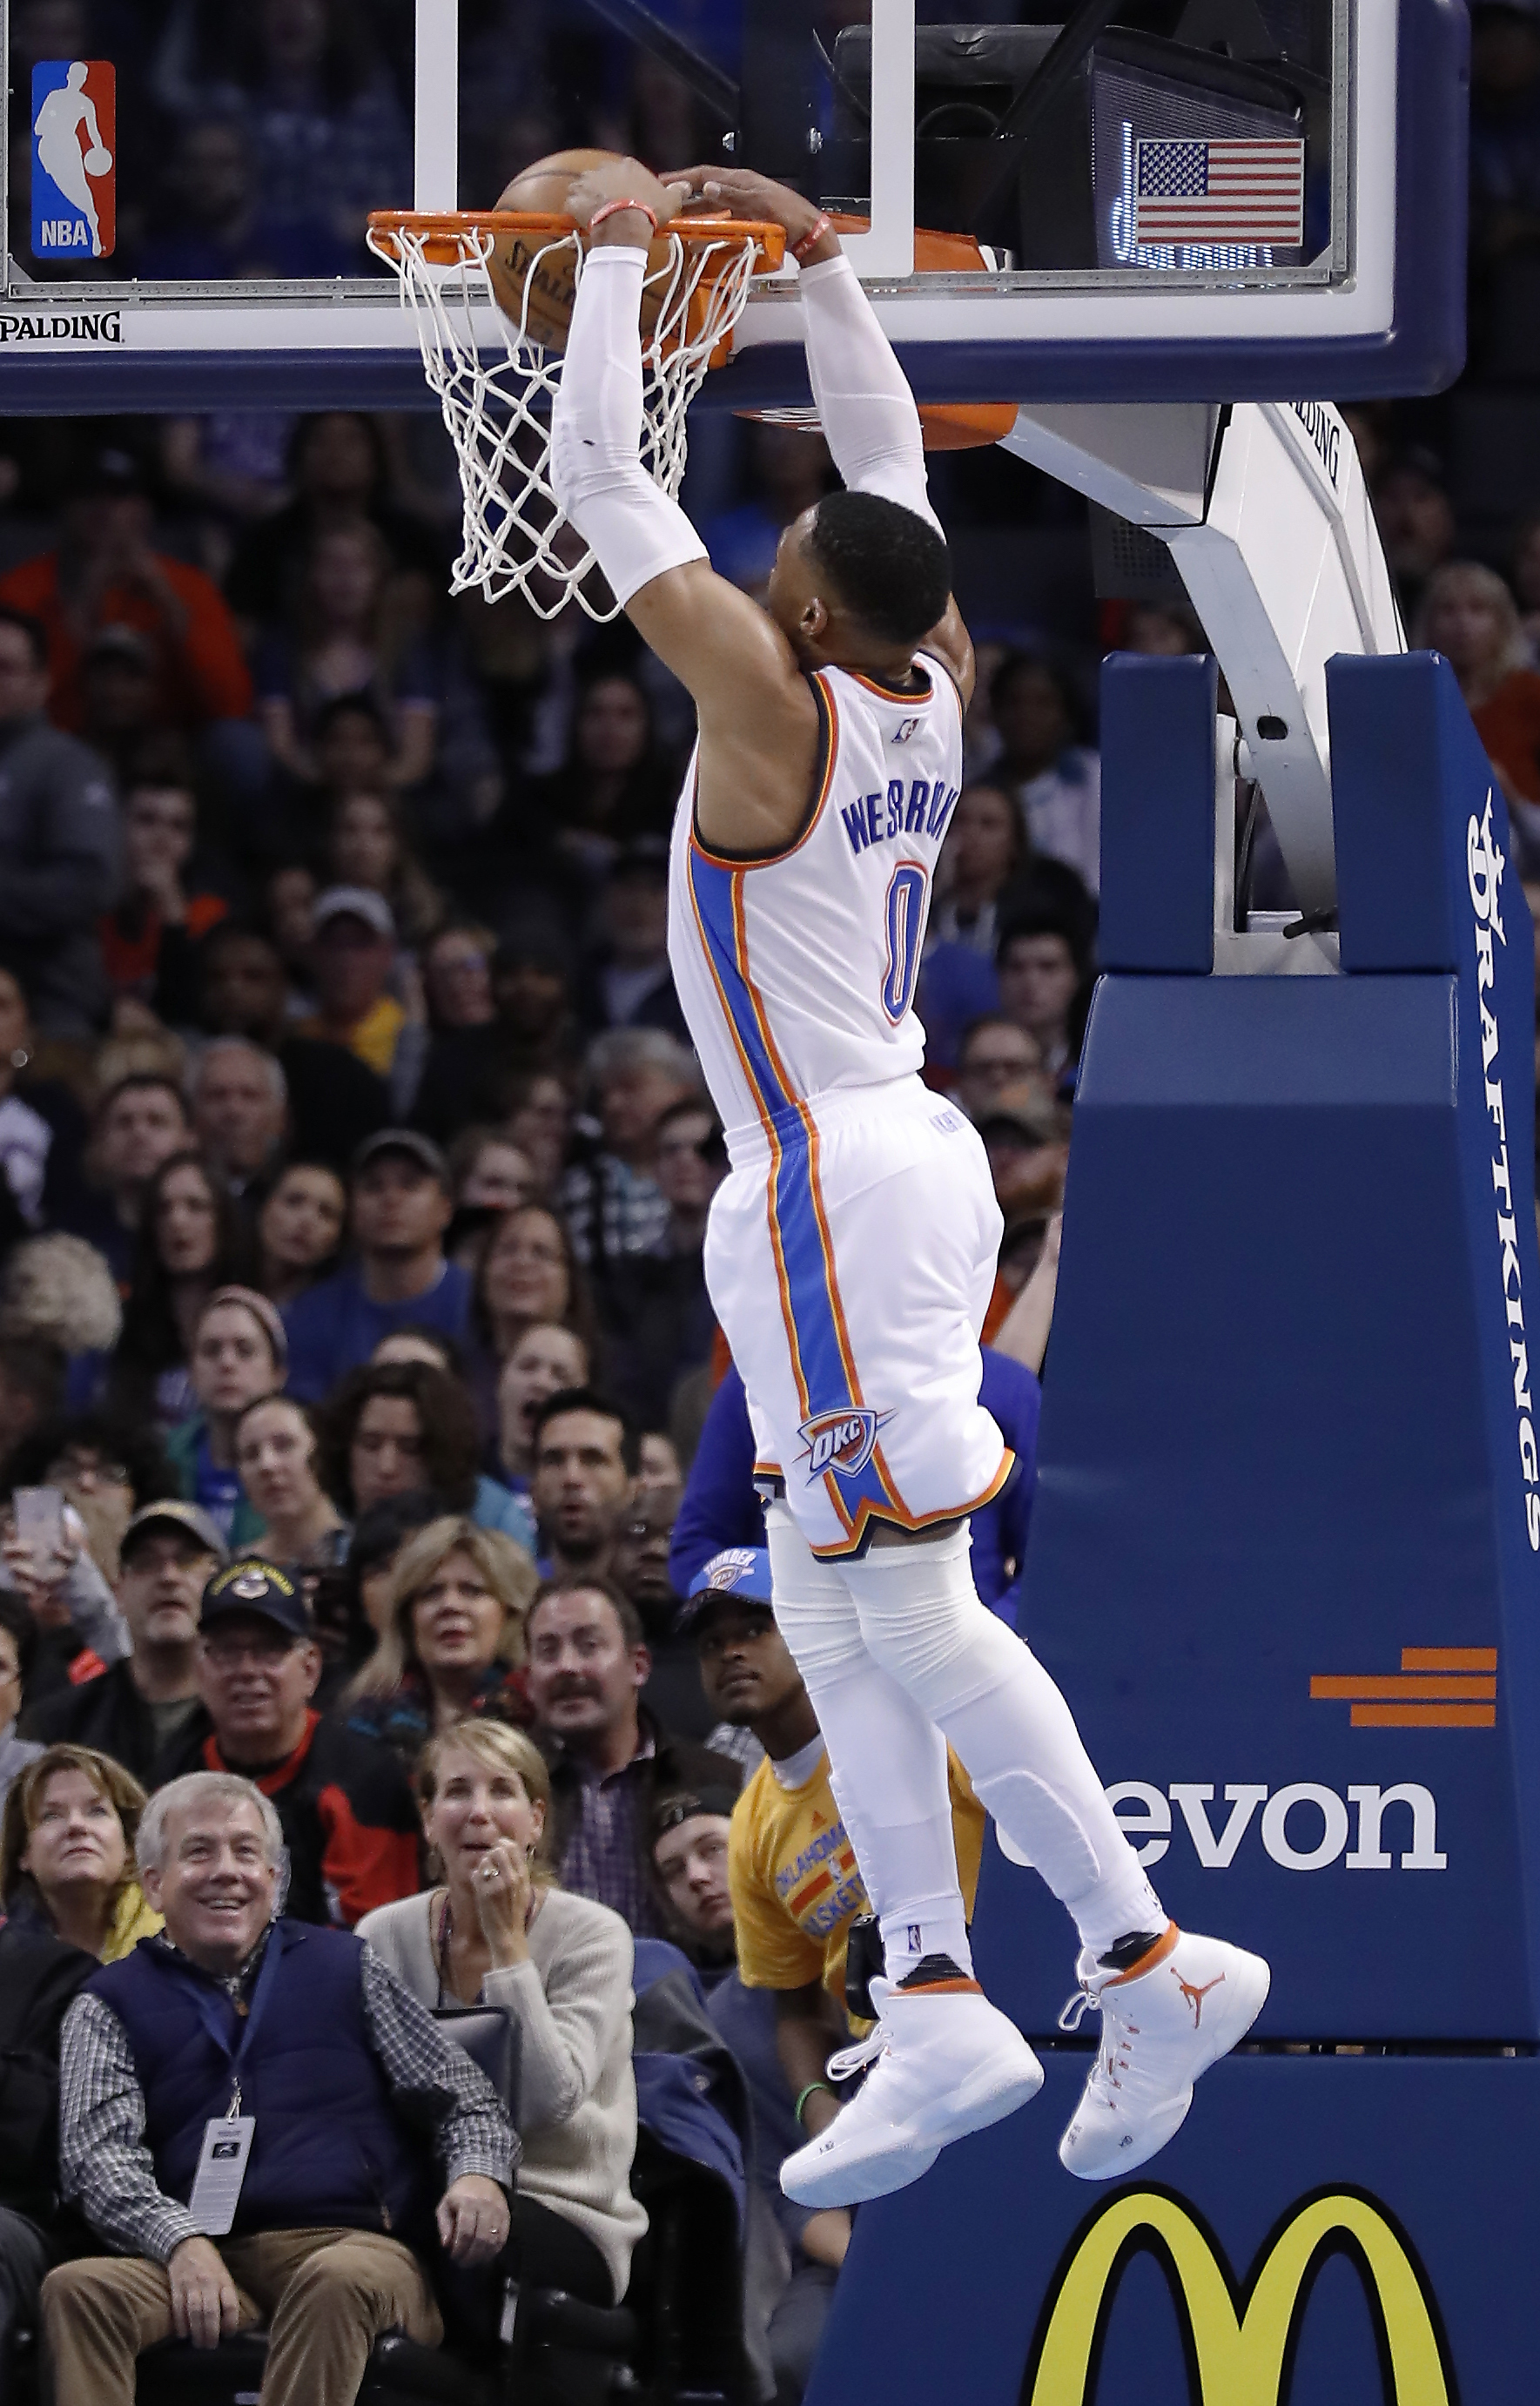 439c402a6 OKLAHOMA CITY (AP) — The Brooklyn Nets knew they couldn t afford to let  Russell Westbrook run wild in the paint. It didn t matter. Westbrook had 30  points